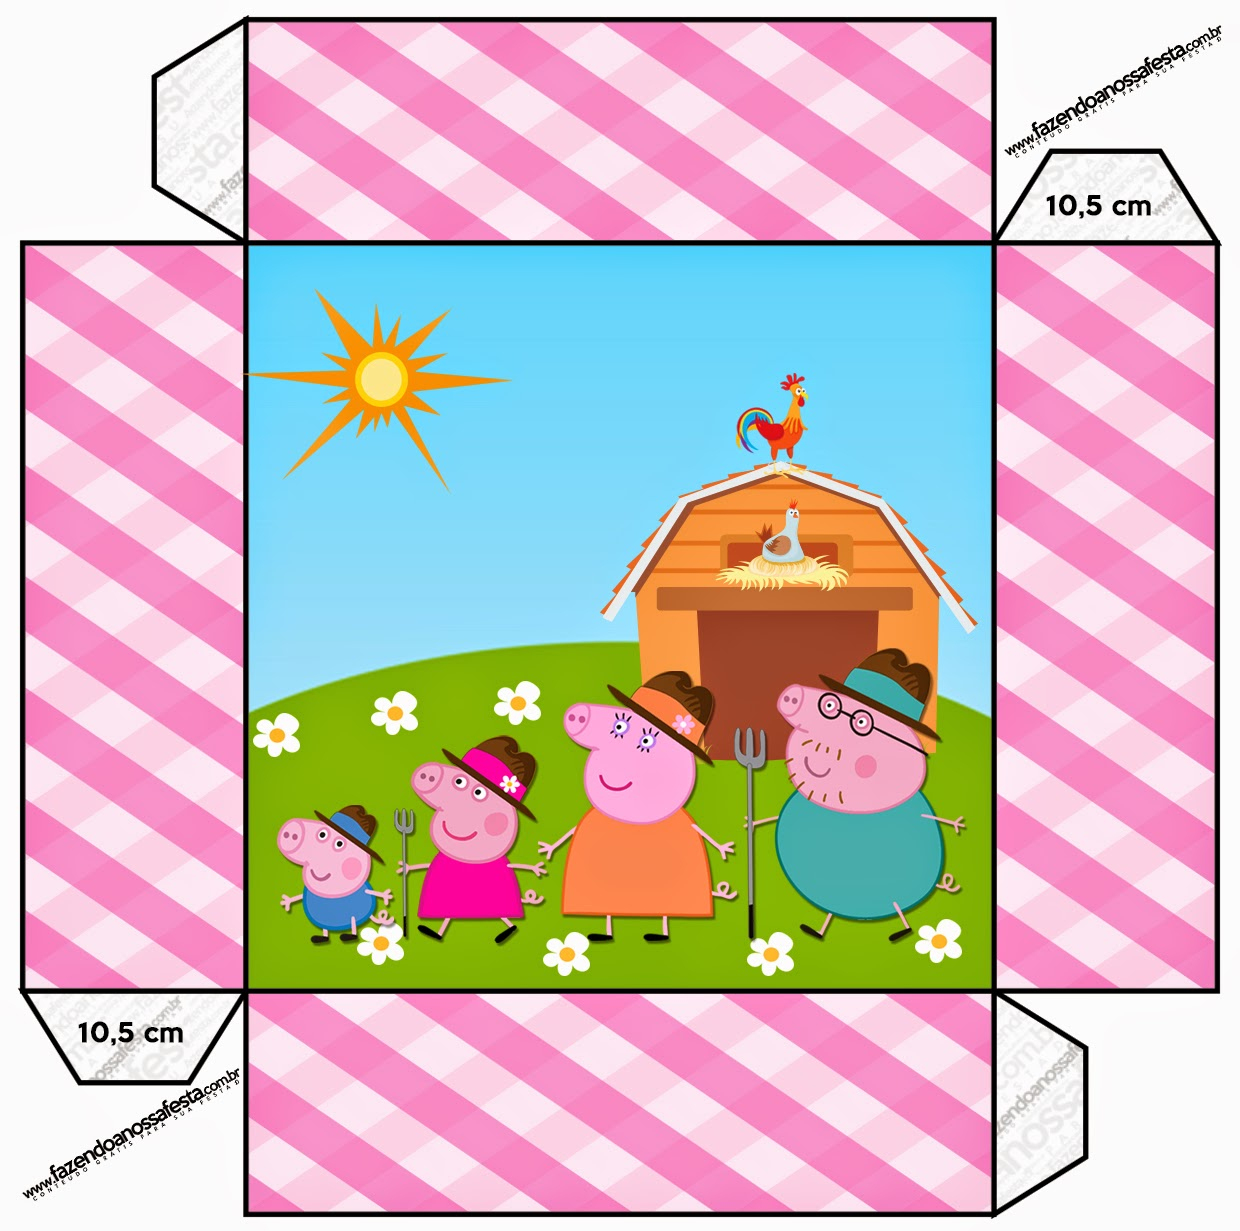 Peppa Pig At The Farm Free Printable Boxes. | Oh My Fiesta! In English - Peppa Pig Character Free Printable Images